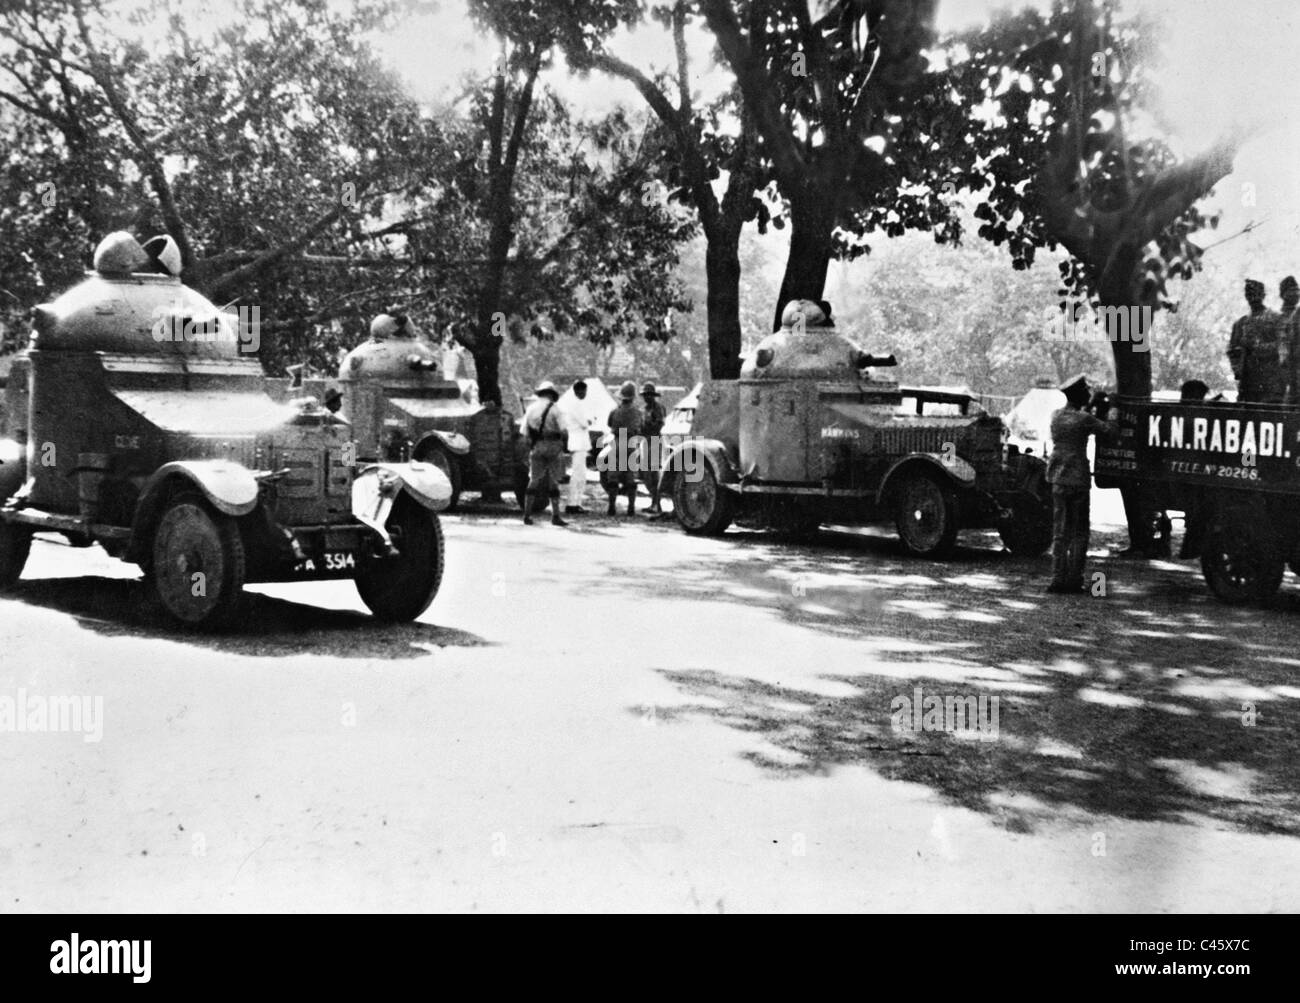 British armored cars in India, 1929 - Stock Image